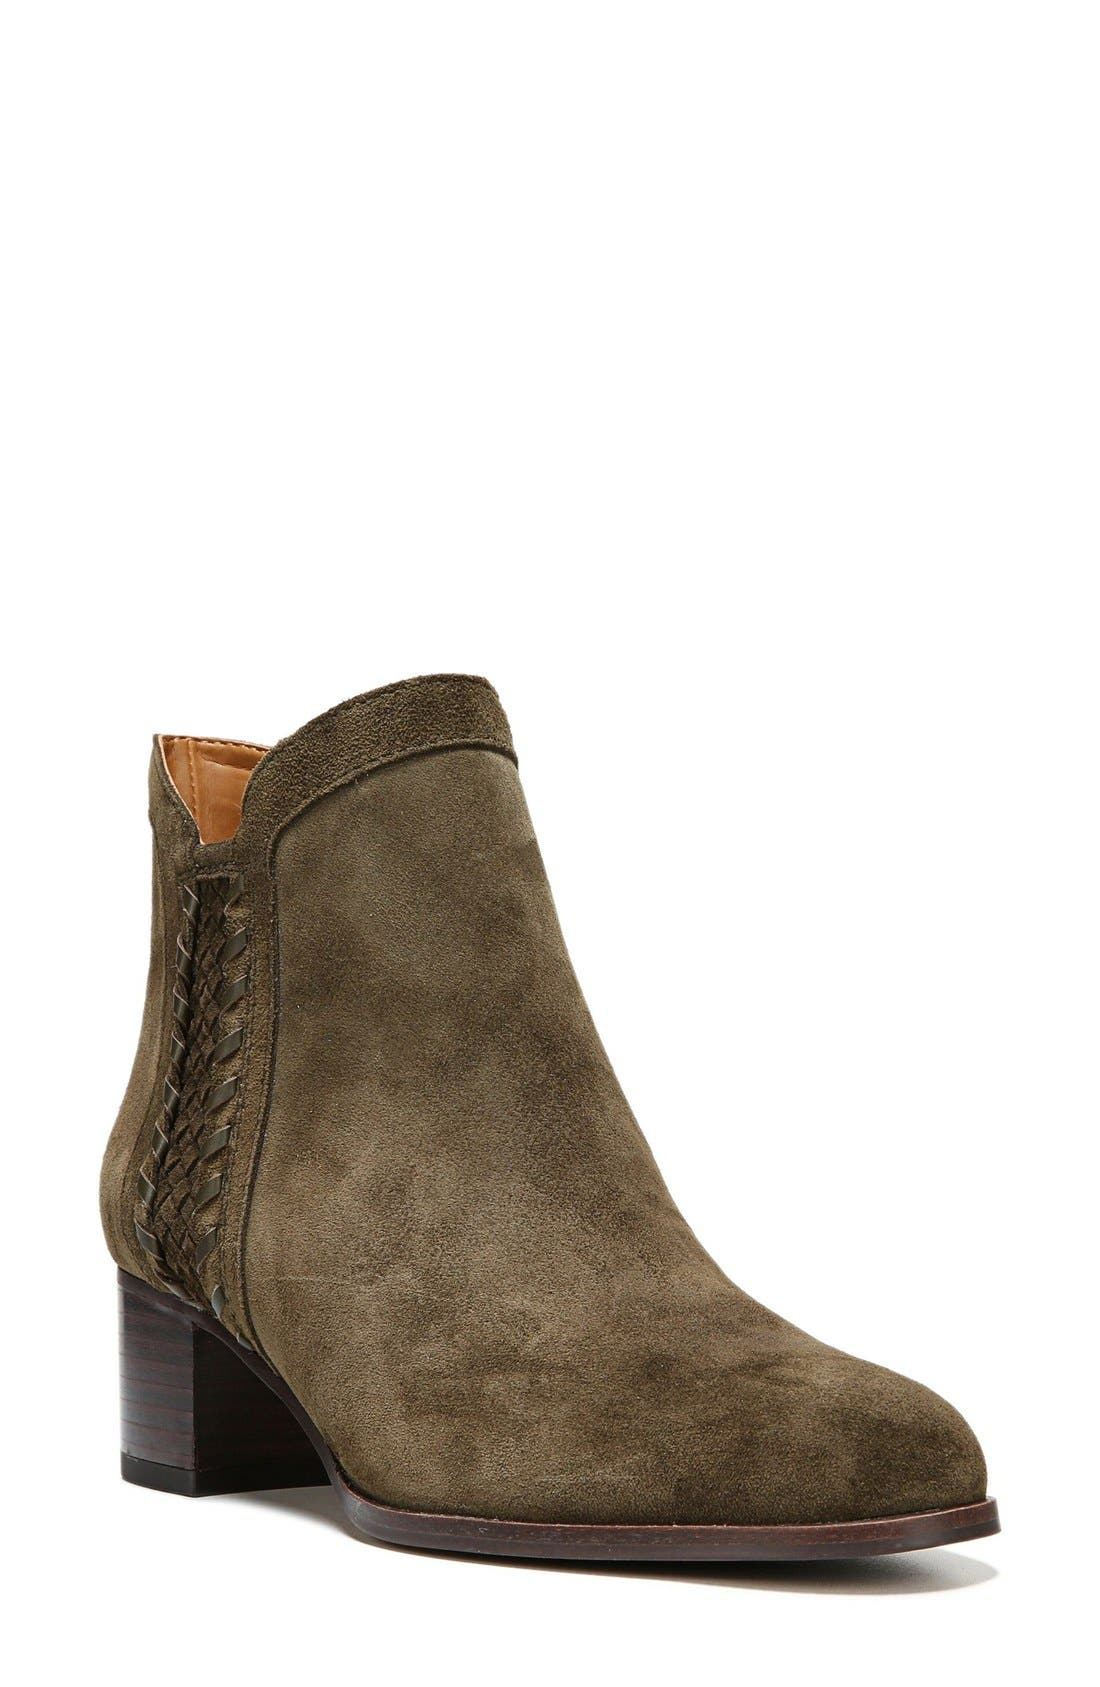 Alternate Image 1 Selected - SARTO by Franco Sarto 'Chenille' Bootie (Women)